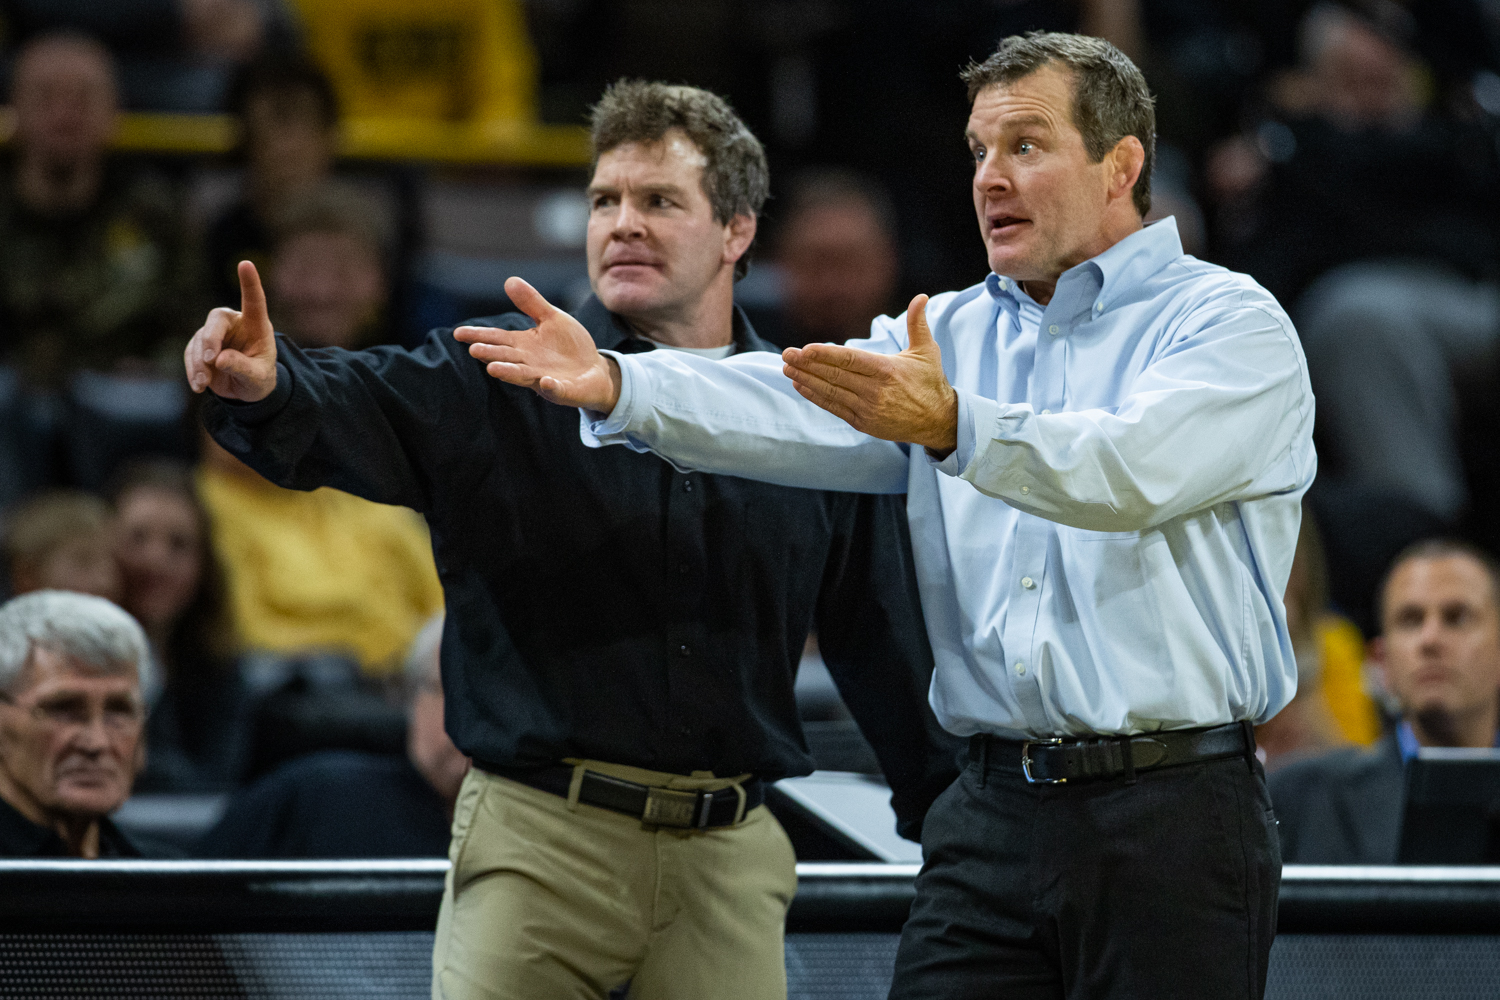 Iowa coaches Terry (left) and Tom Brands gesture toward the officials during a wrestling dual meet between Iowa and Nebraska at Carver-Hawkeye Arena on Saturday, Jan. 18, 2020. The Hawkeyes defeated the Huskers, 26-6.